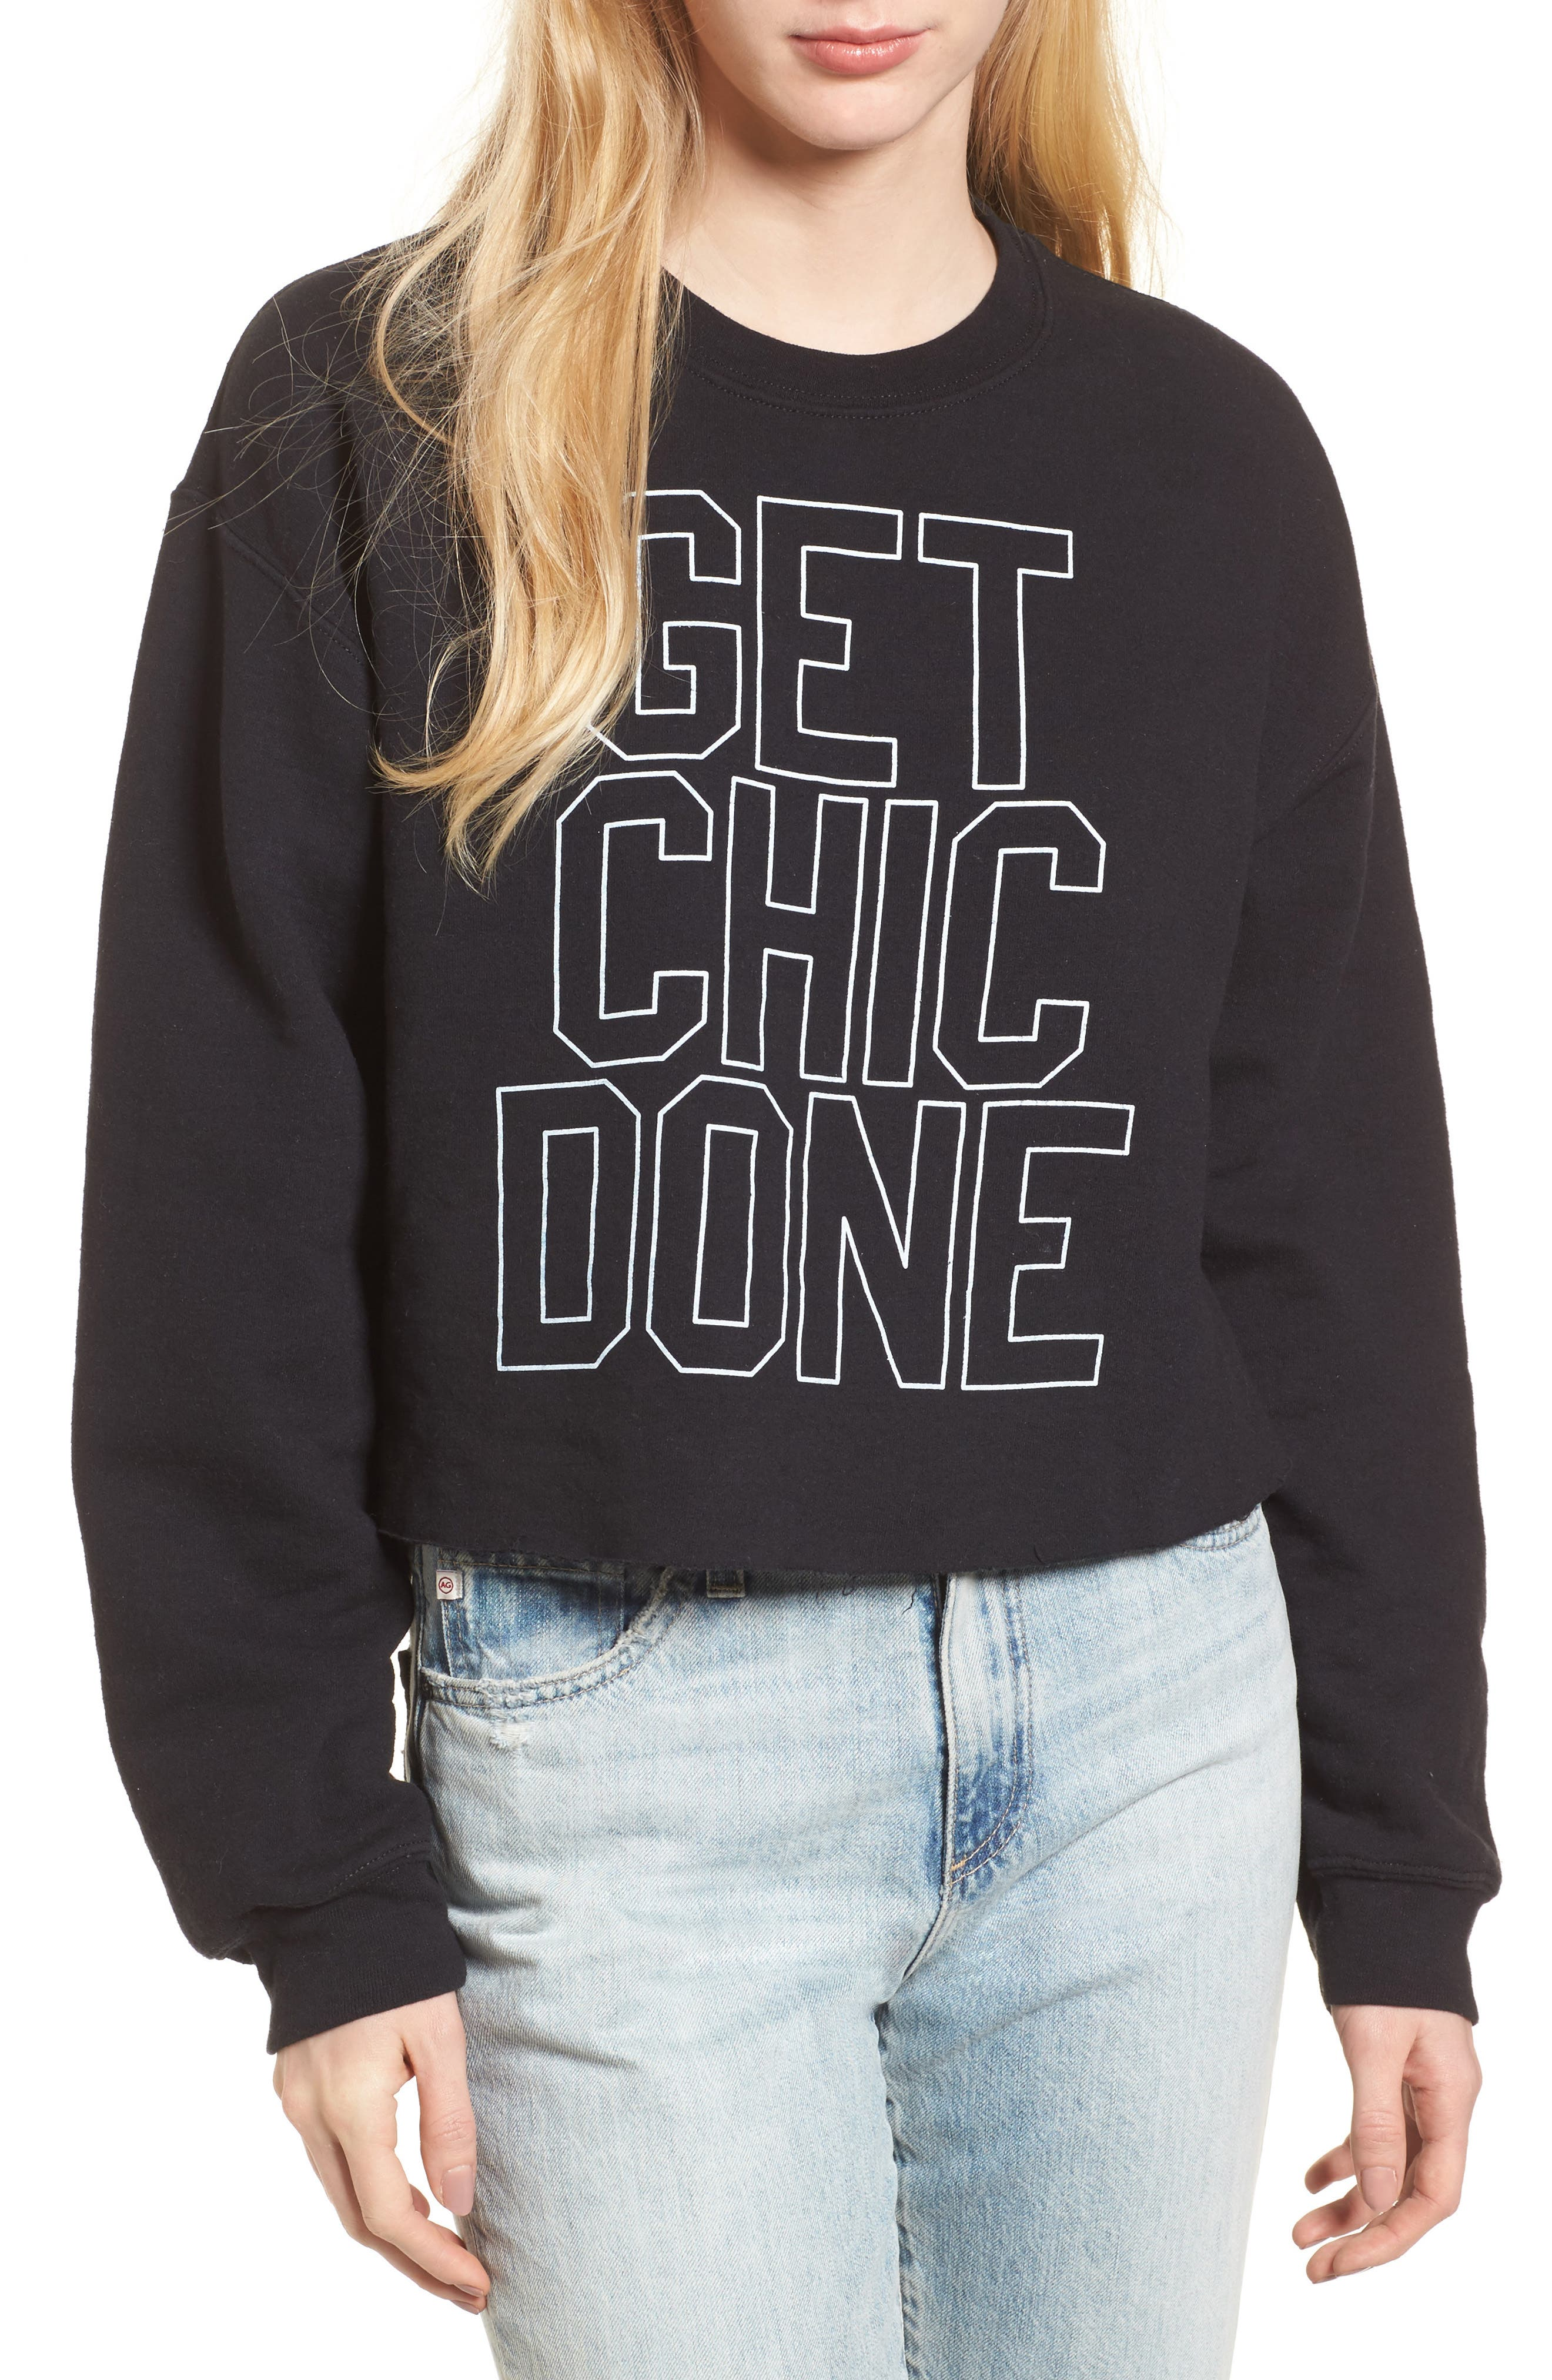 Get Chic Done Sweatshirt,                             Main thumbnail 1, color,                             001